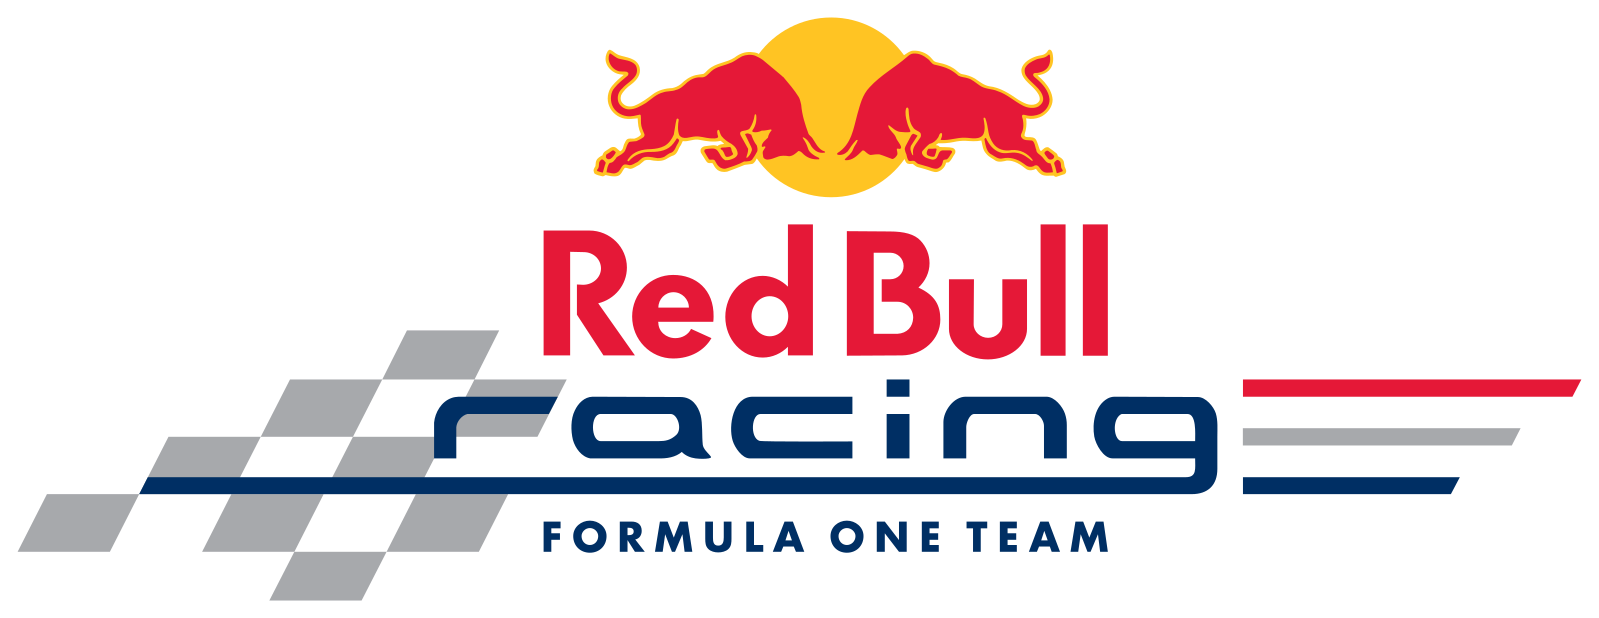 Red bull energy drink logo png. Datei racing svg renault